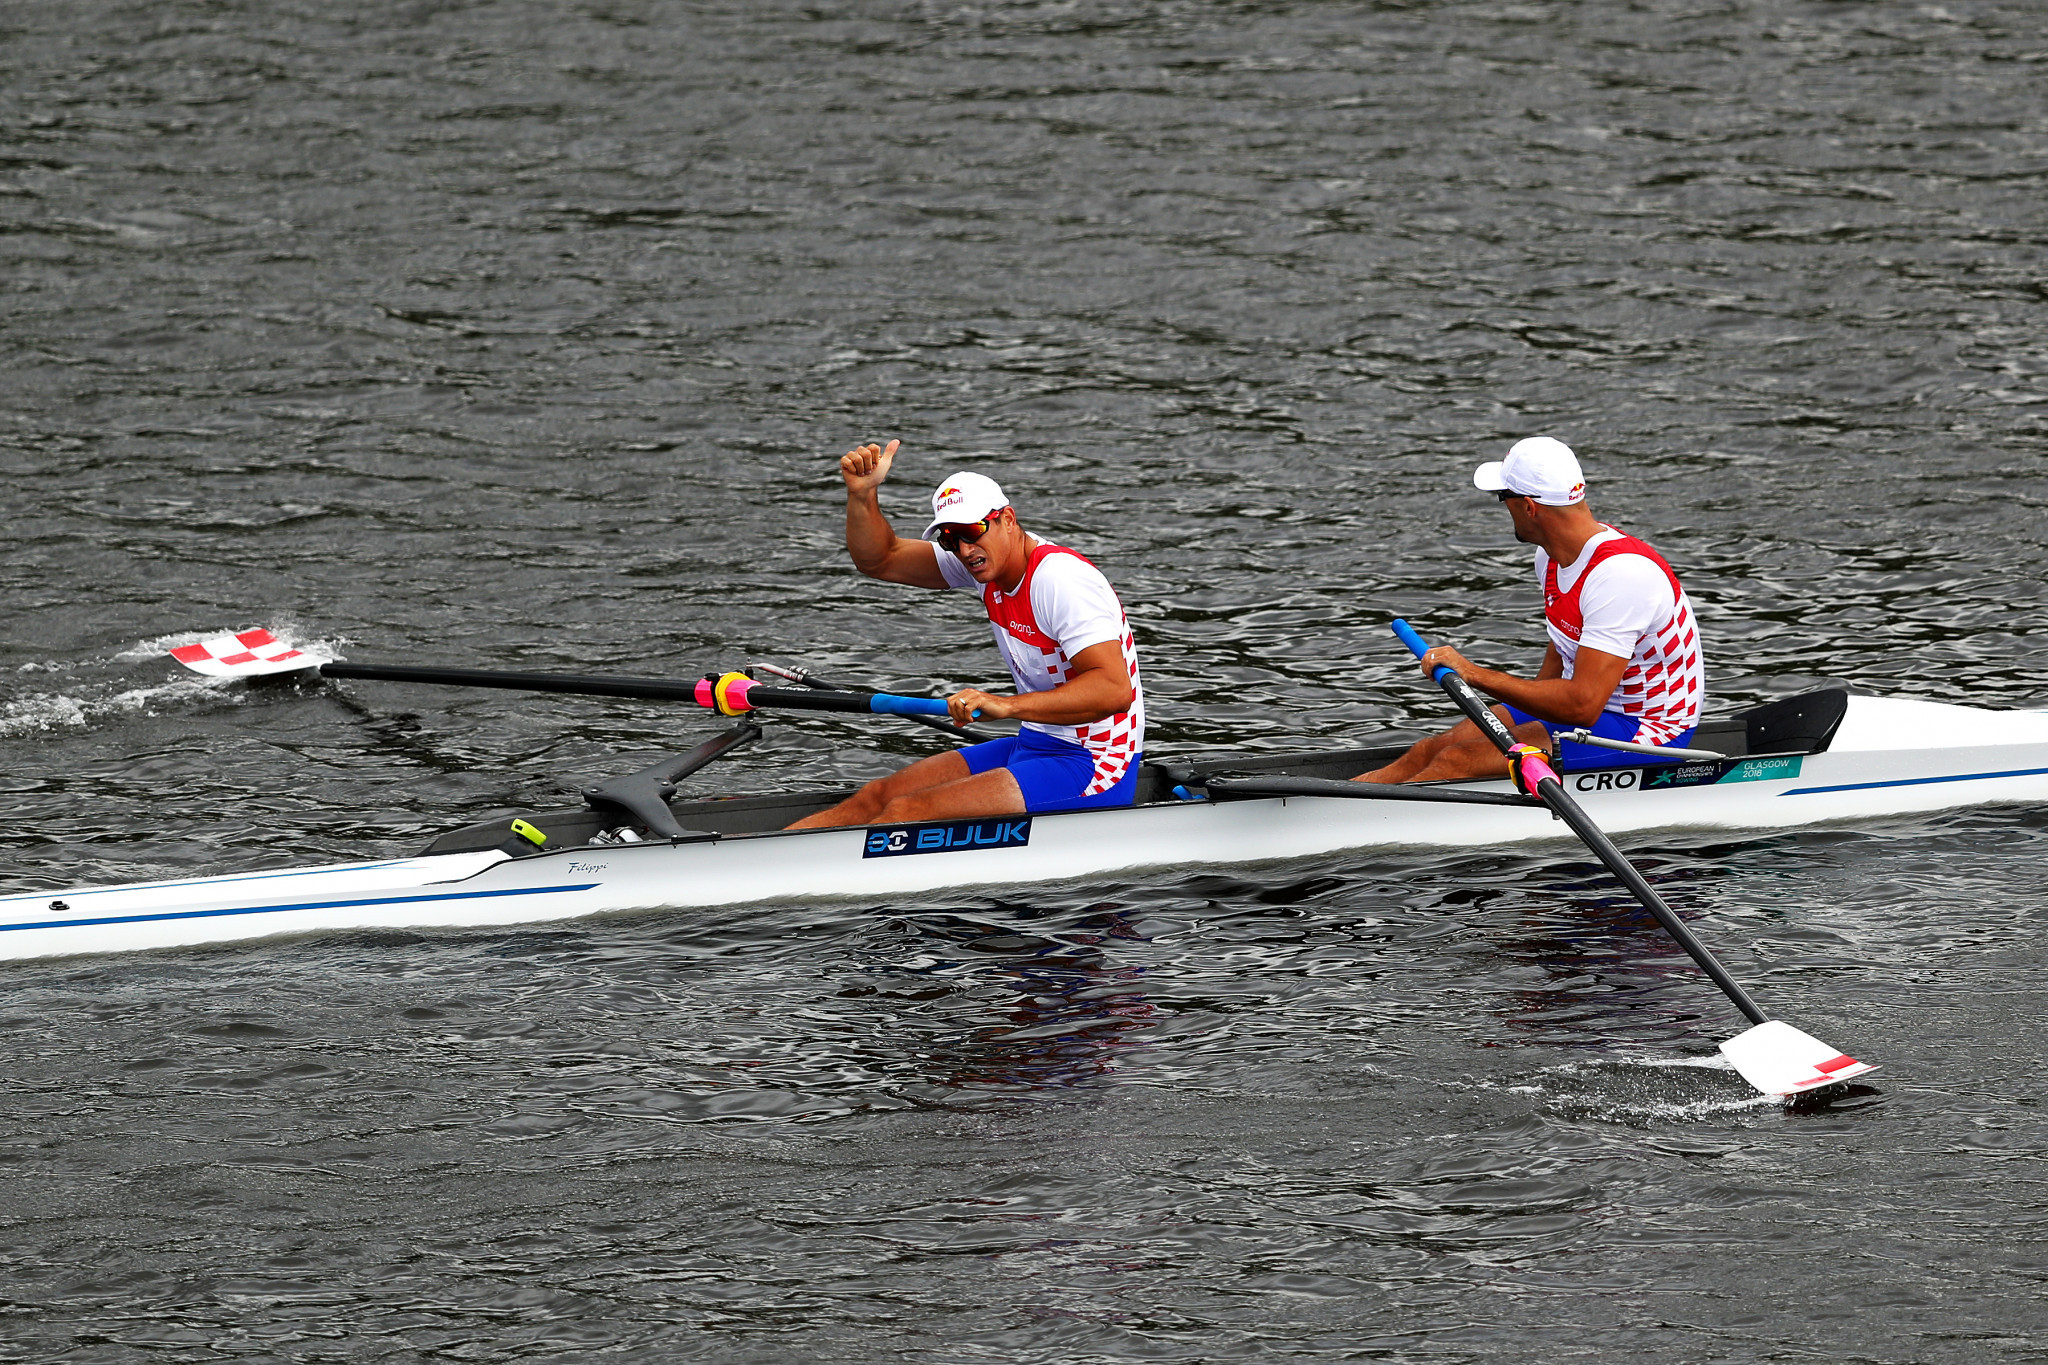 Sinković brothers claim pairs title as Romania impress on opening day of Glasgow 2018 rowing finals